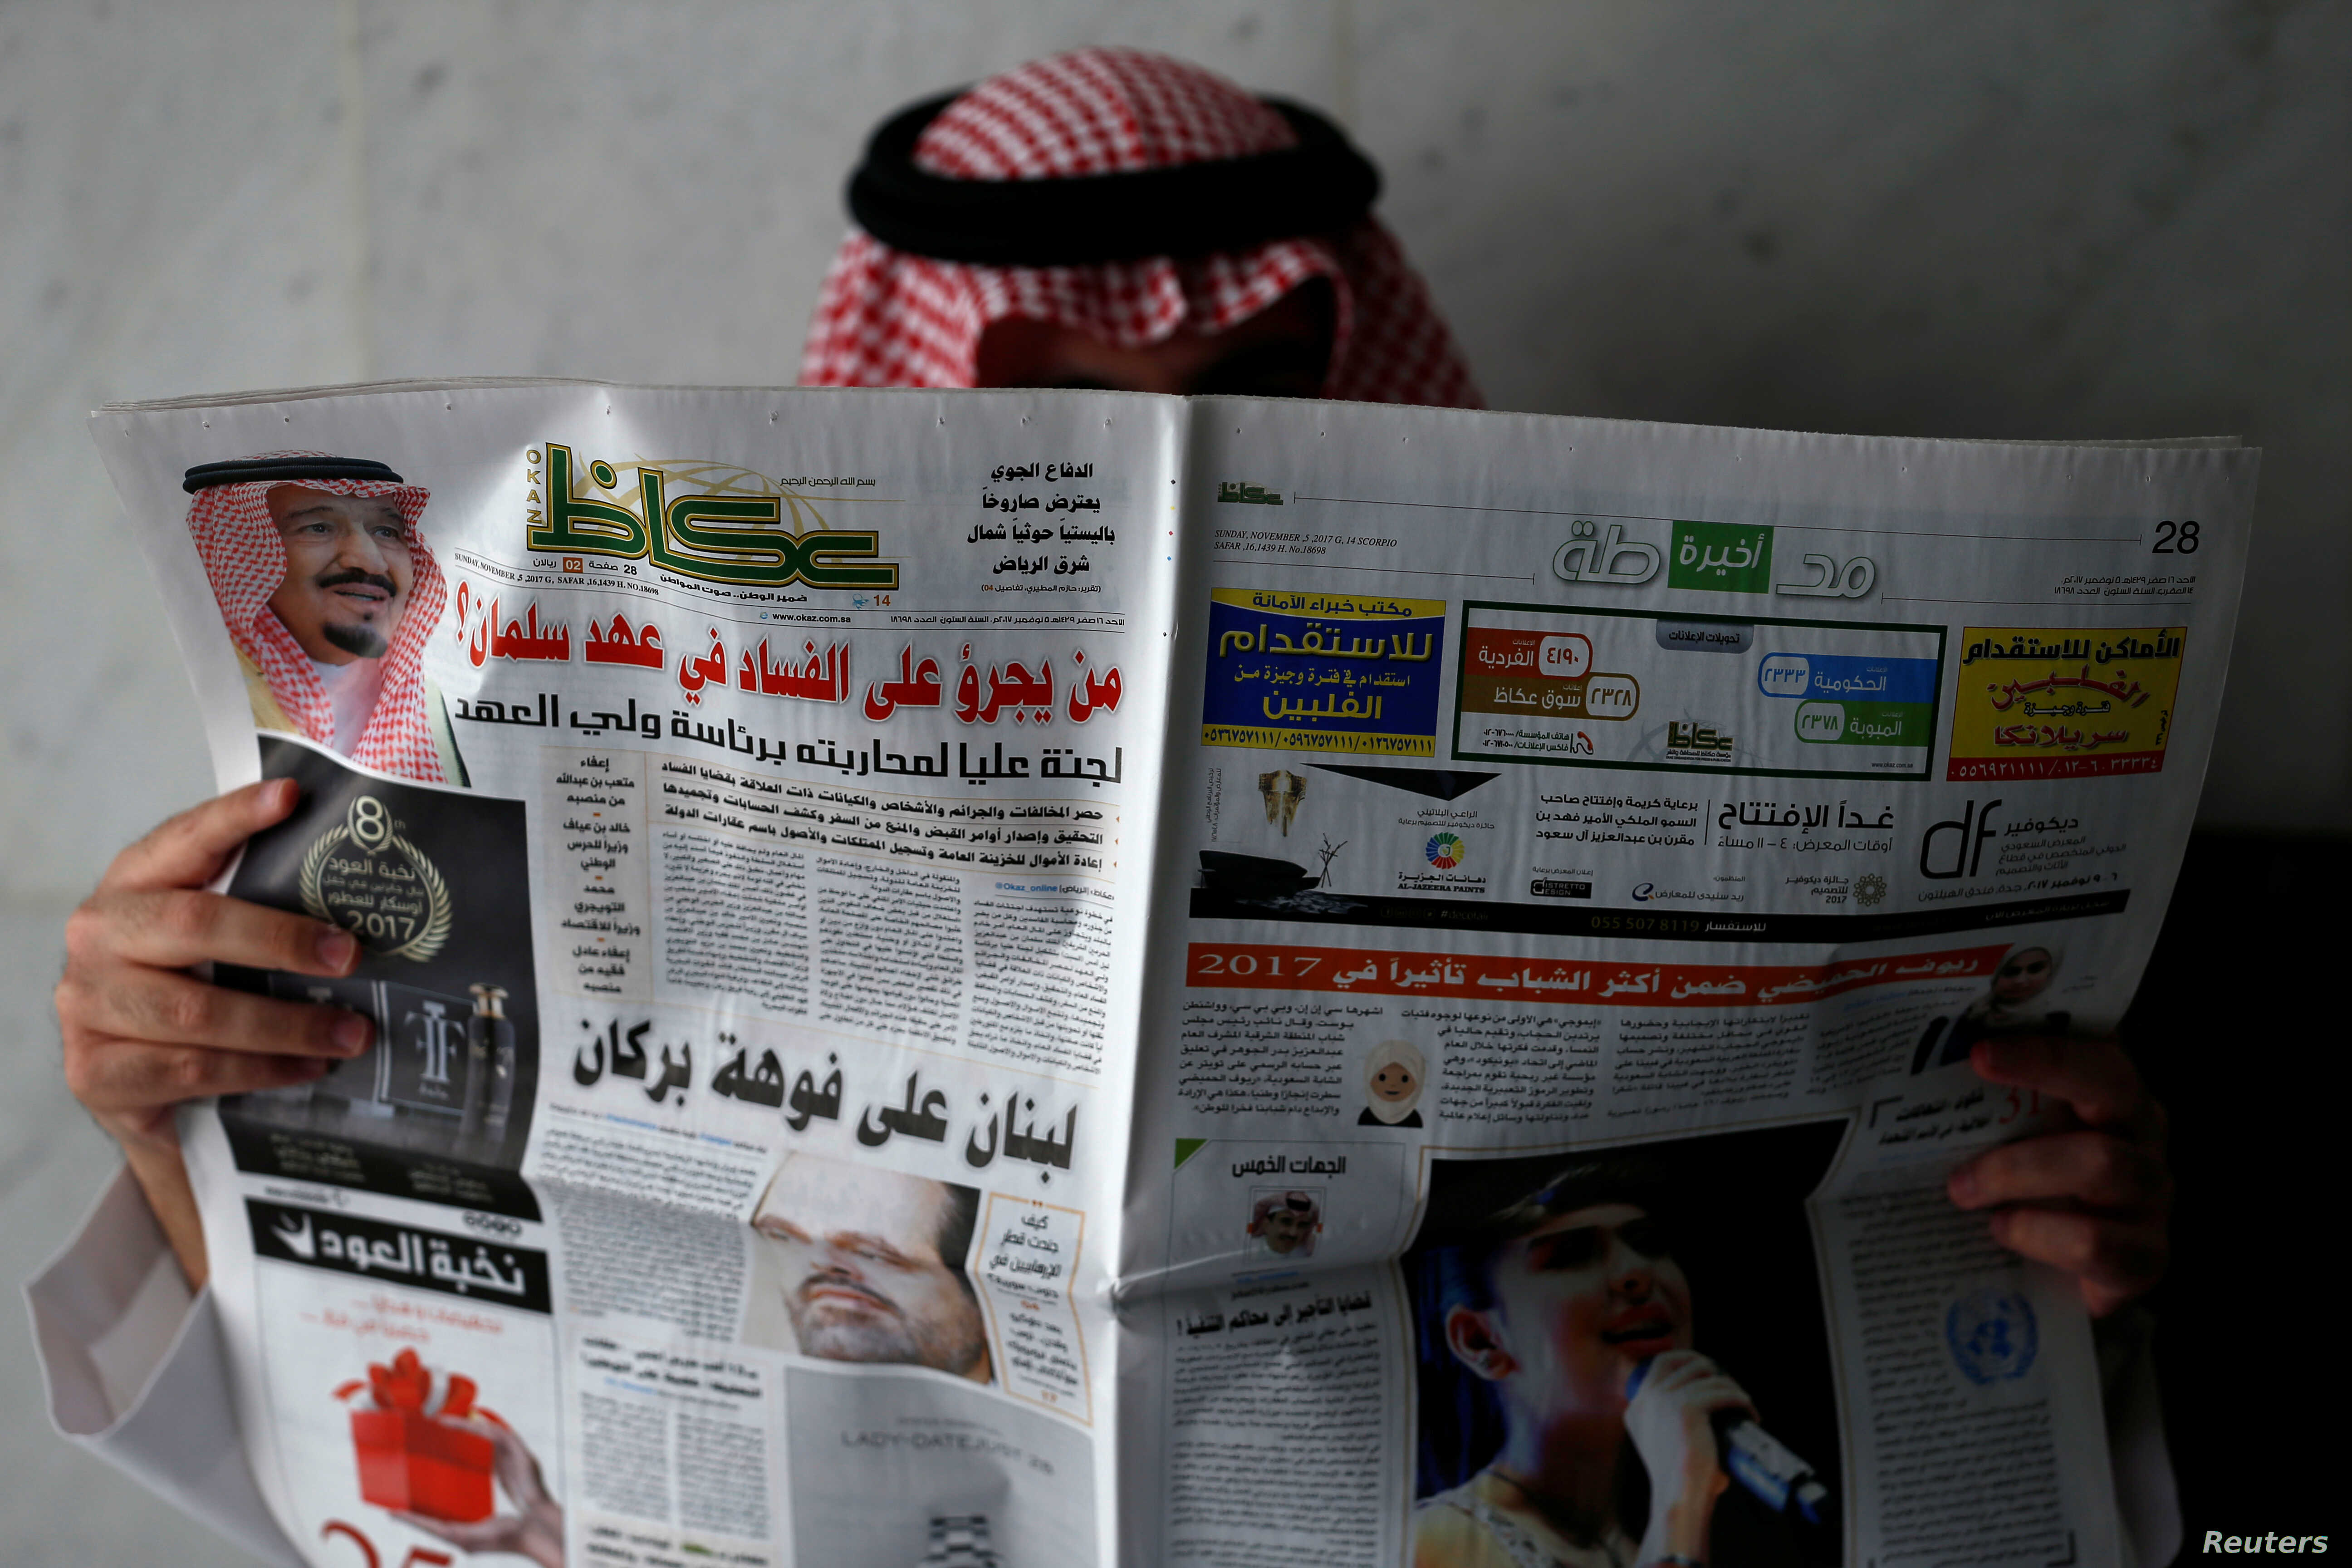 A man reads a newspaper in Riyadh, Saudi Arabia, Nov. 5, 2017.